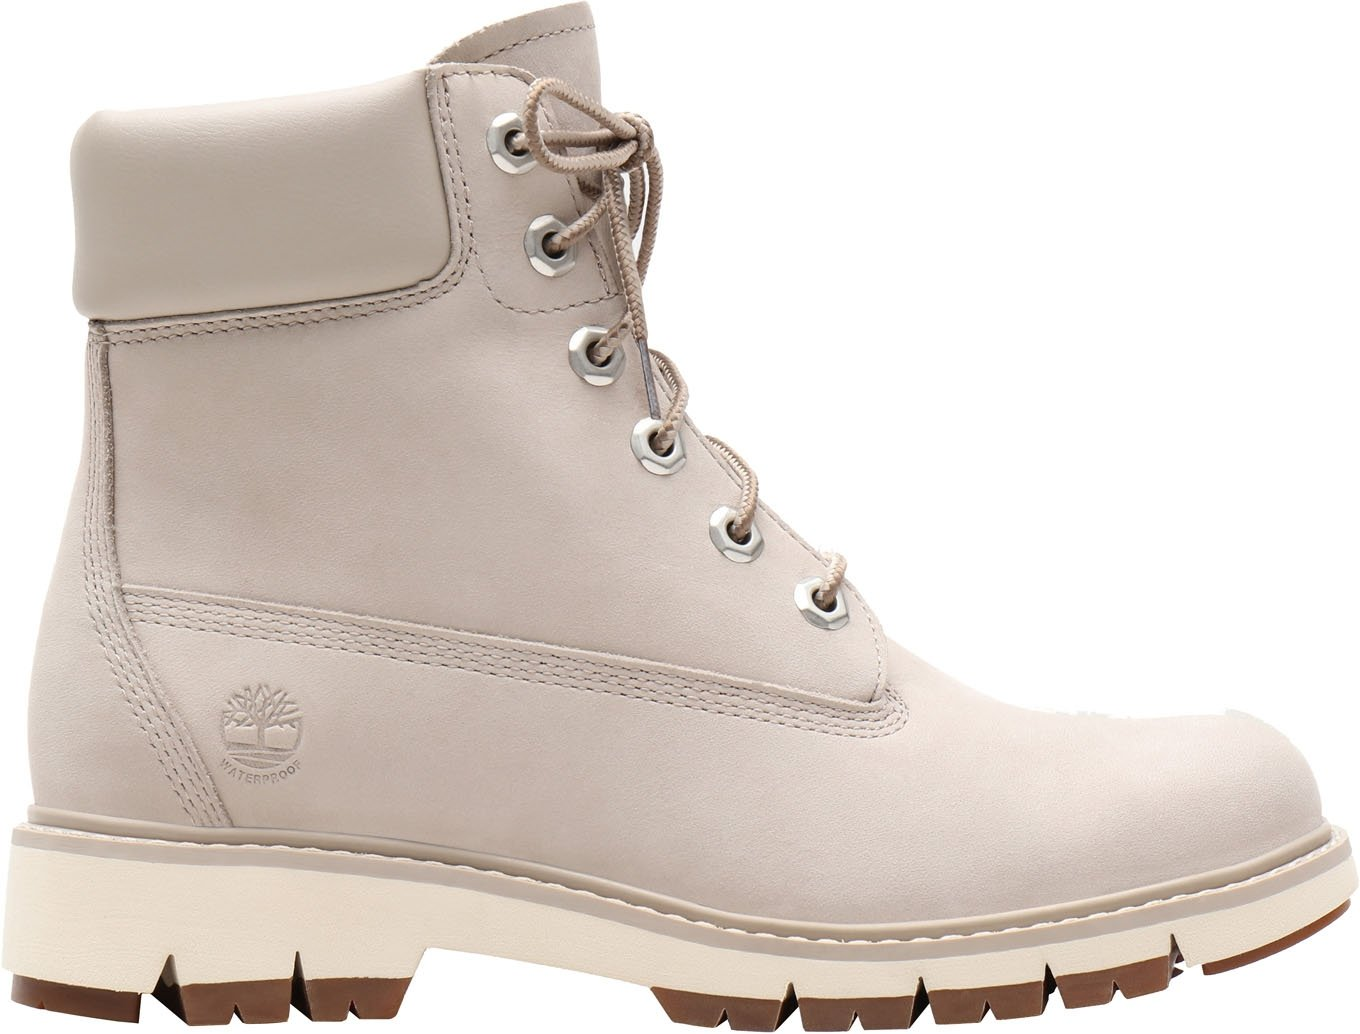 Lucia Way 6in WP Boot Gris Clair